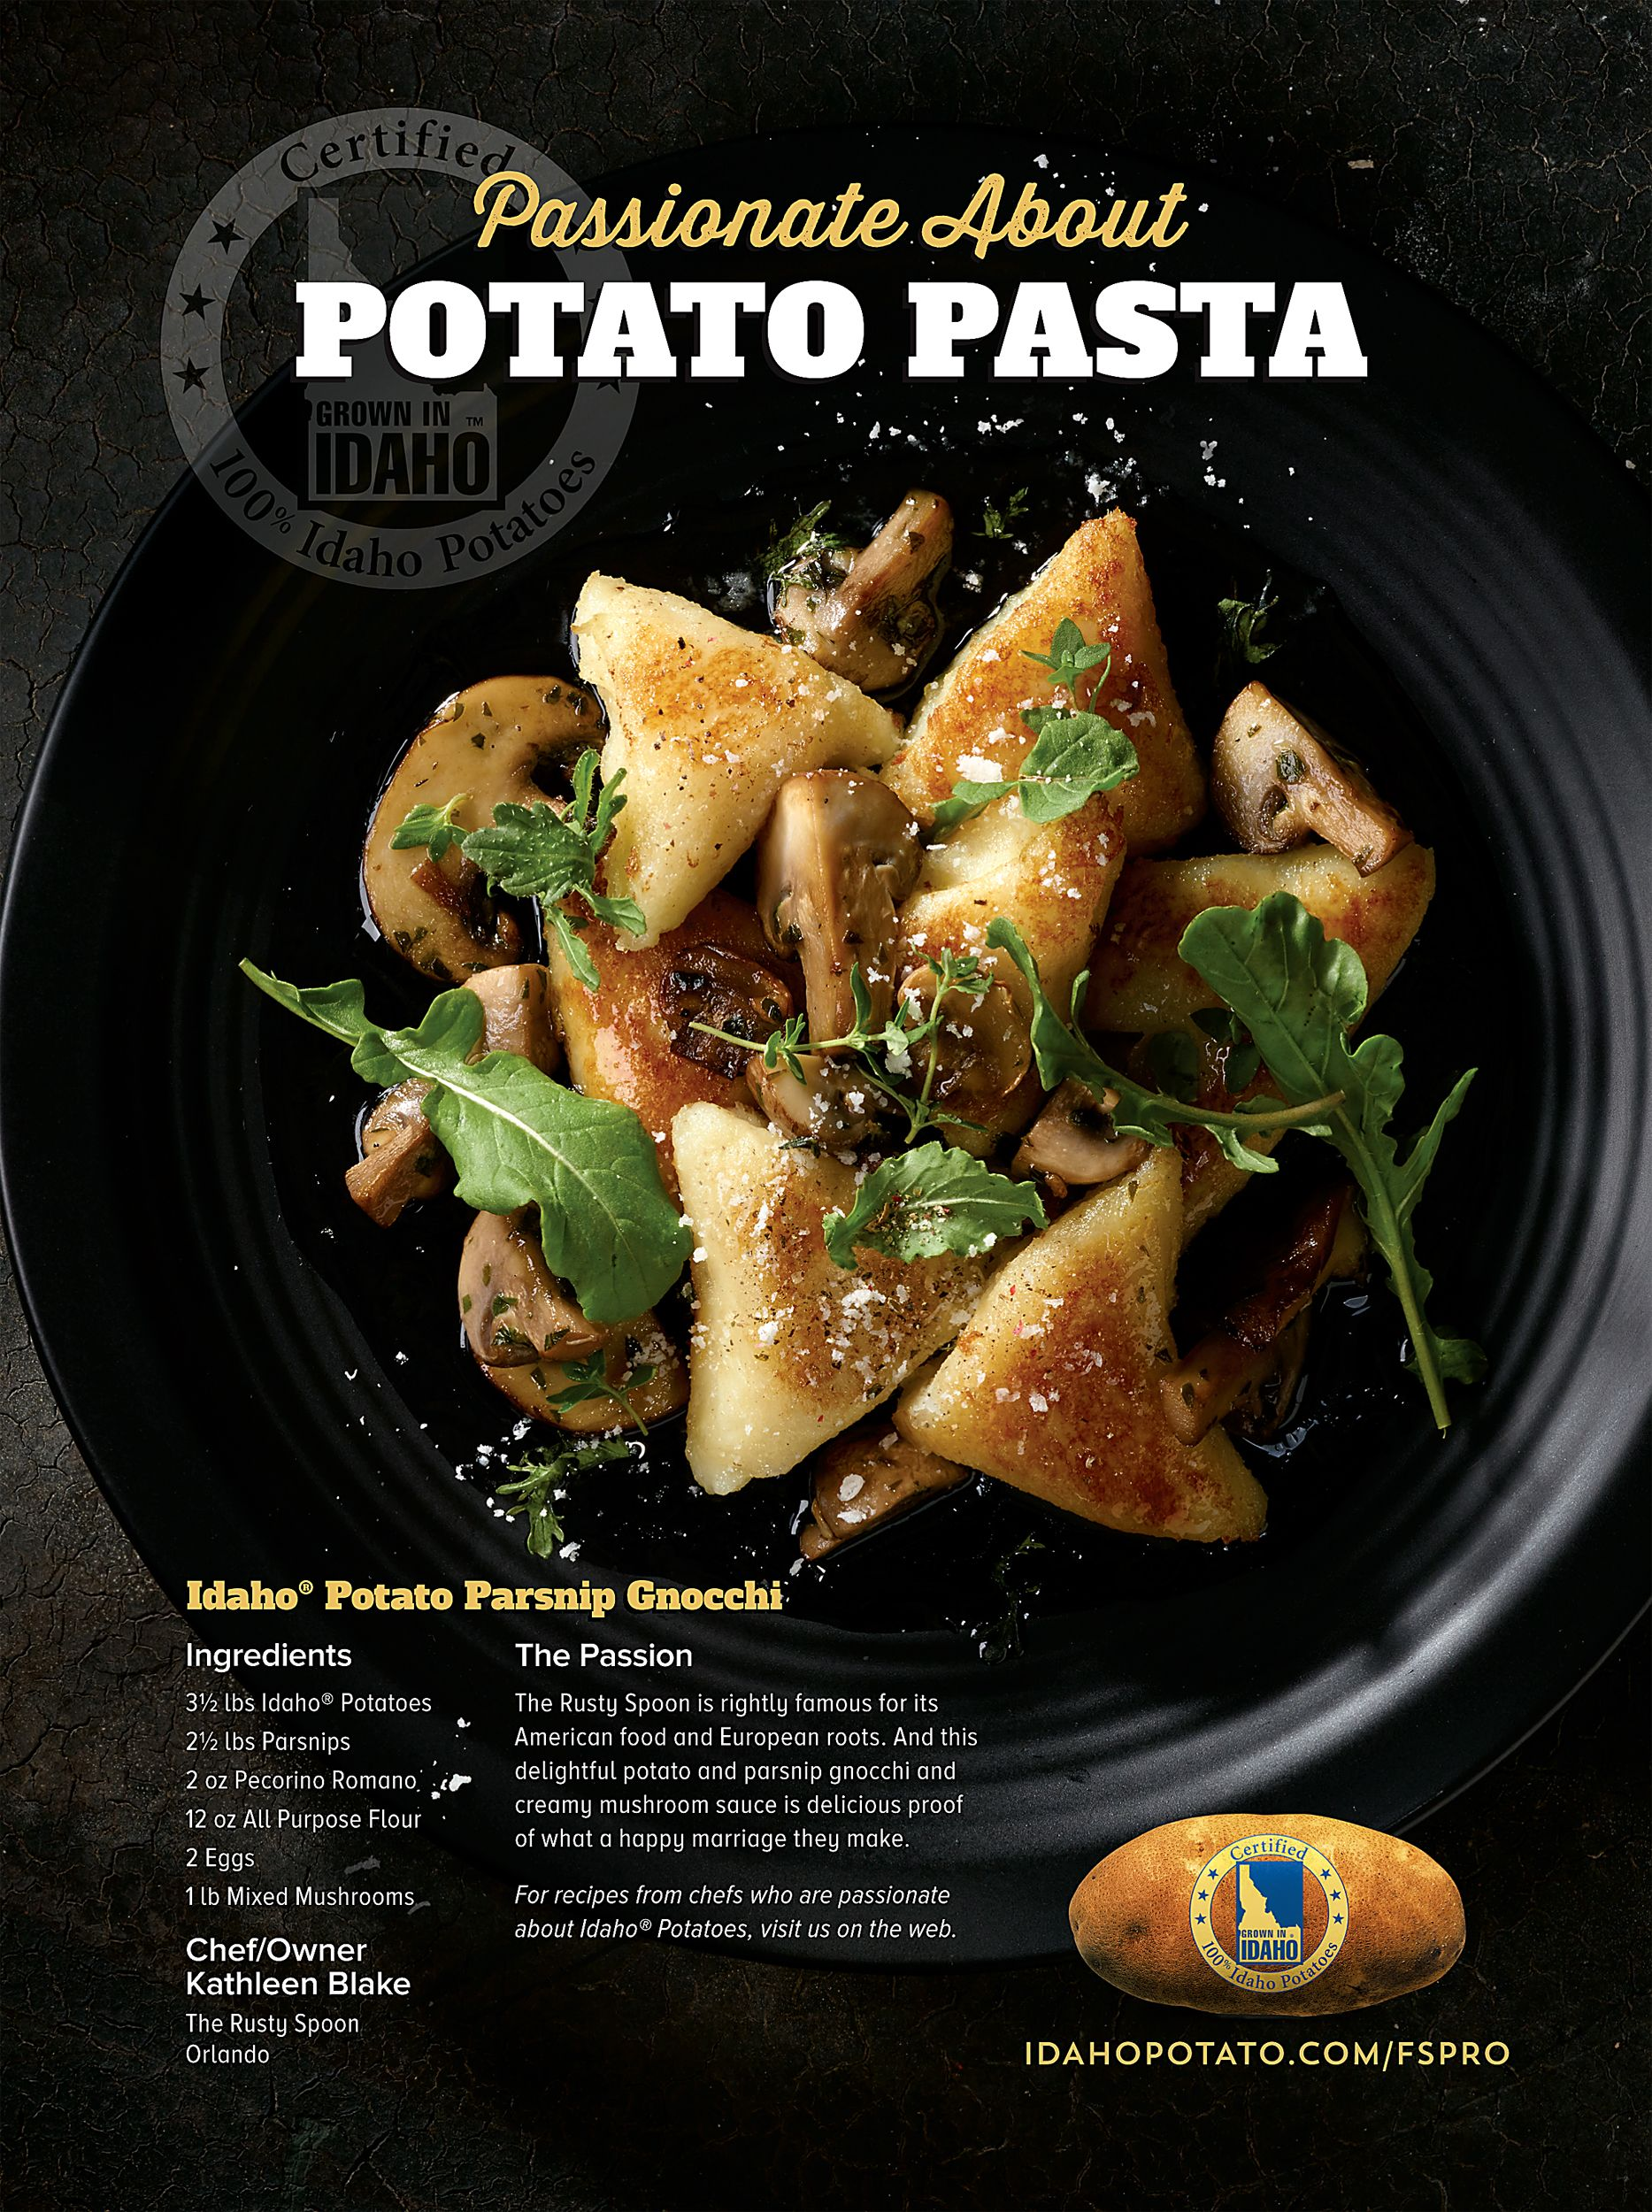 IPC-G0353d-potato-pasta-8x10.jpg